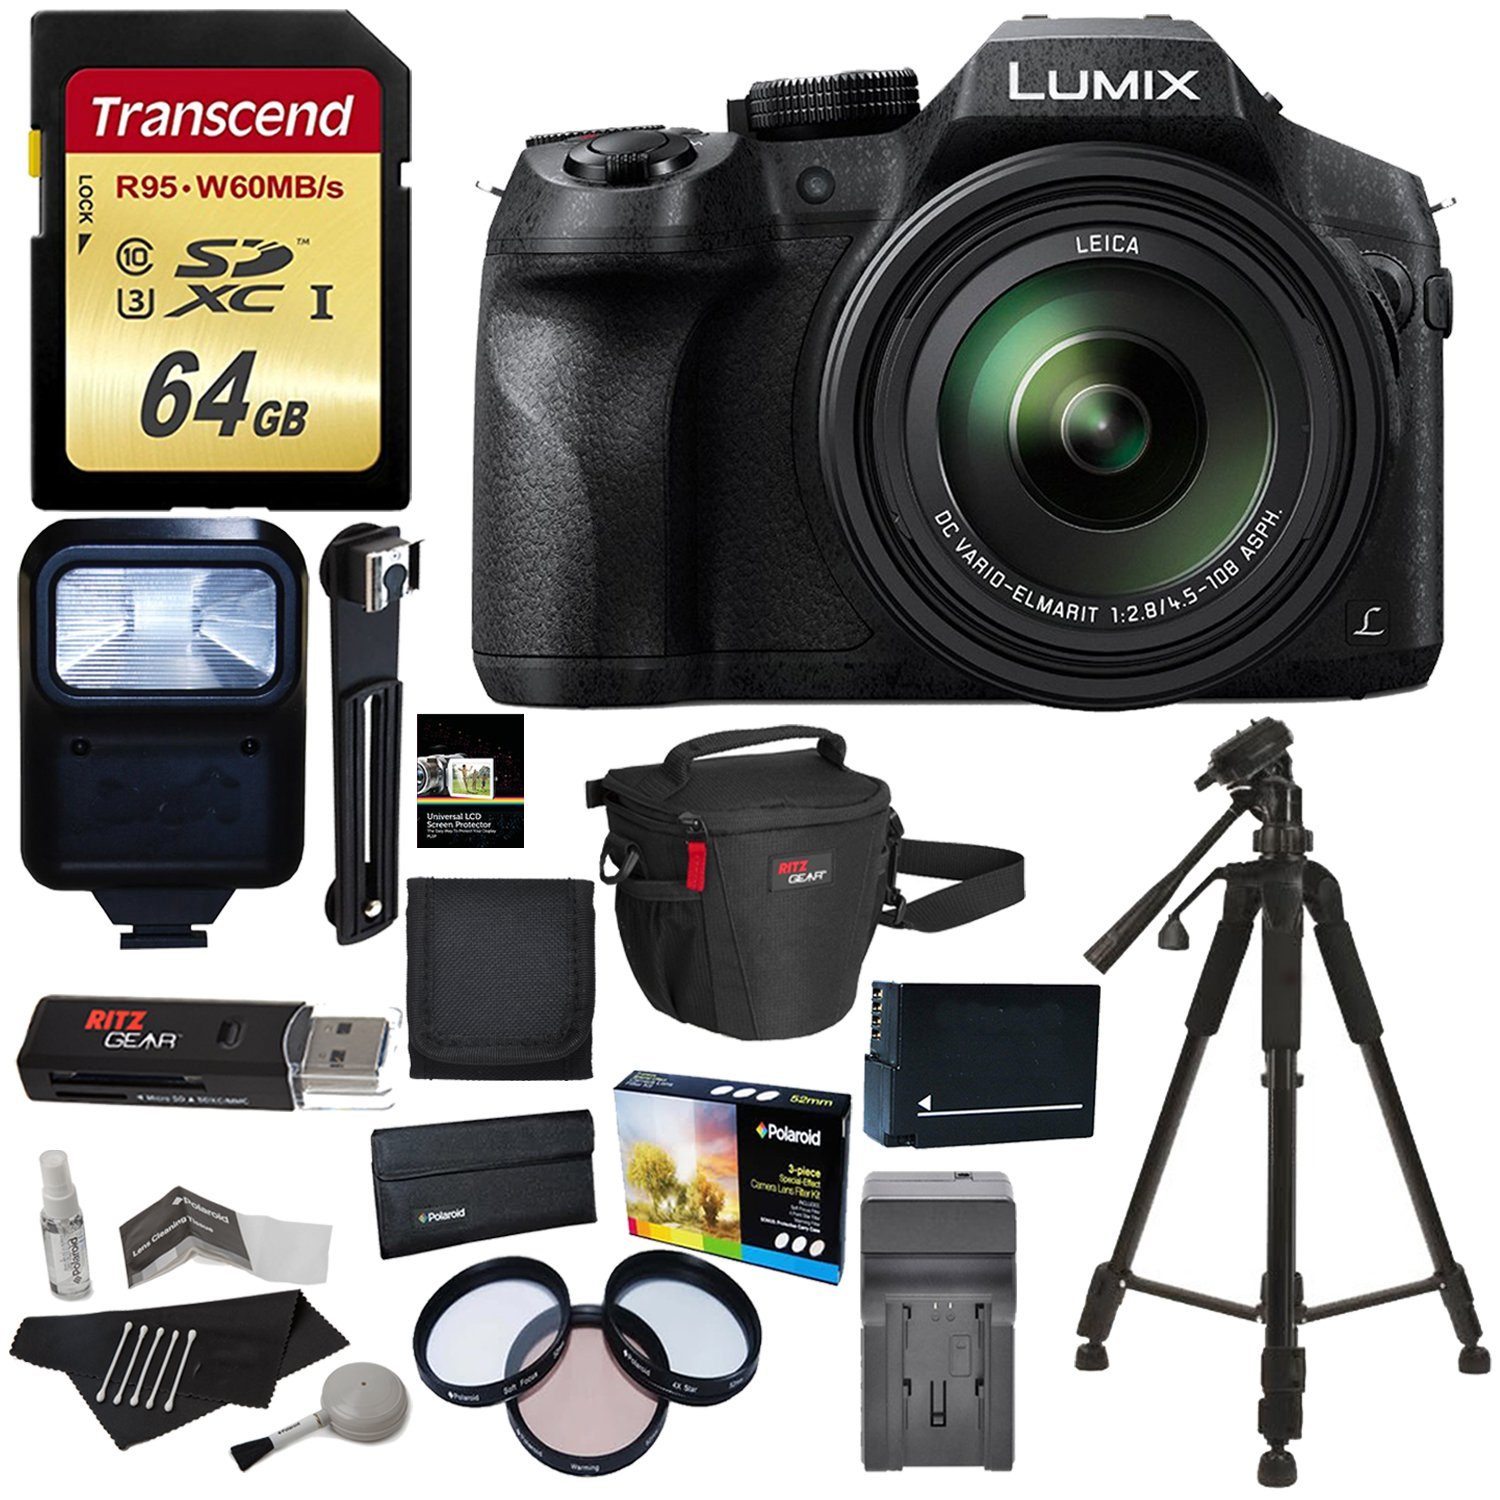 Panasonic LUMIX DMC FZ300 4K Point and Shoot Camera with Leica DC Lens 24X Zoom Black + Polaroid Accessory Kit + 64GB SD Card + 50'' Tripod + Ritz Gear Bag + Battery + Charger + Filter + Cleaning Kit